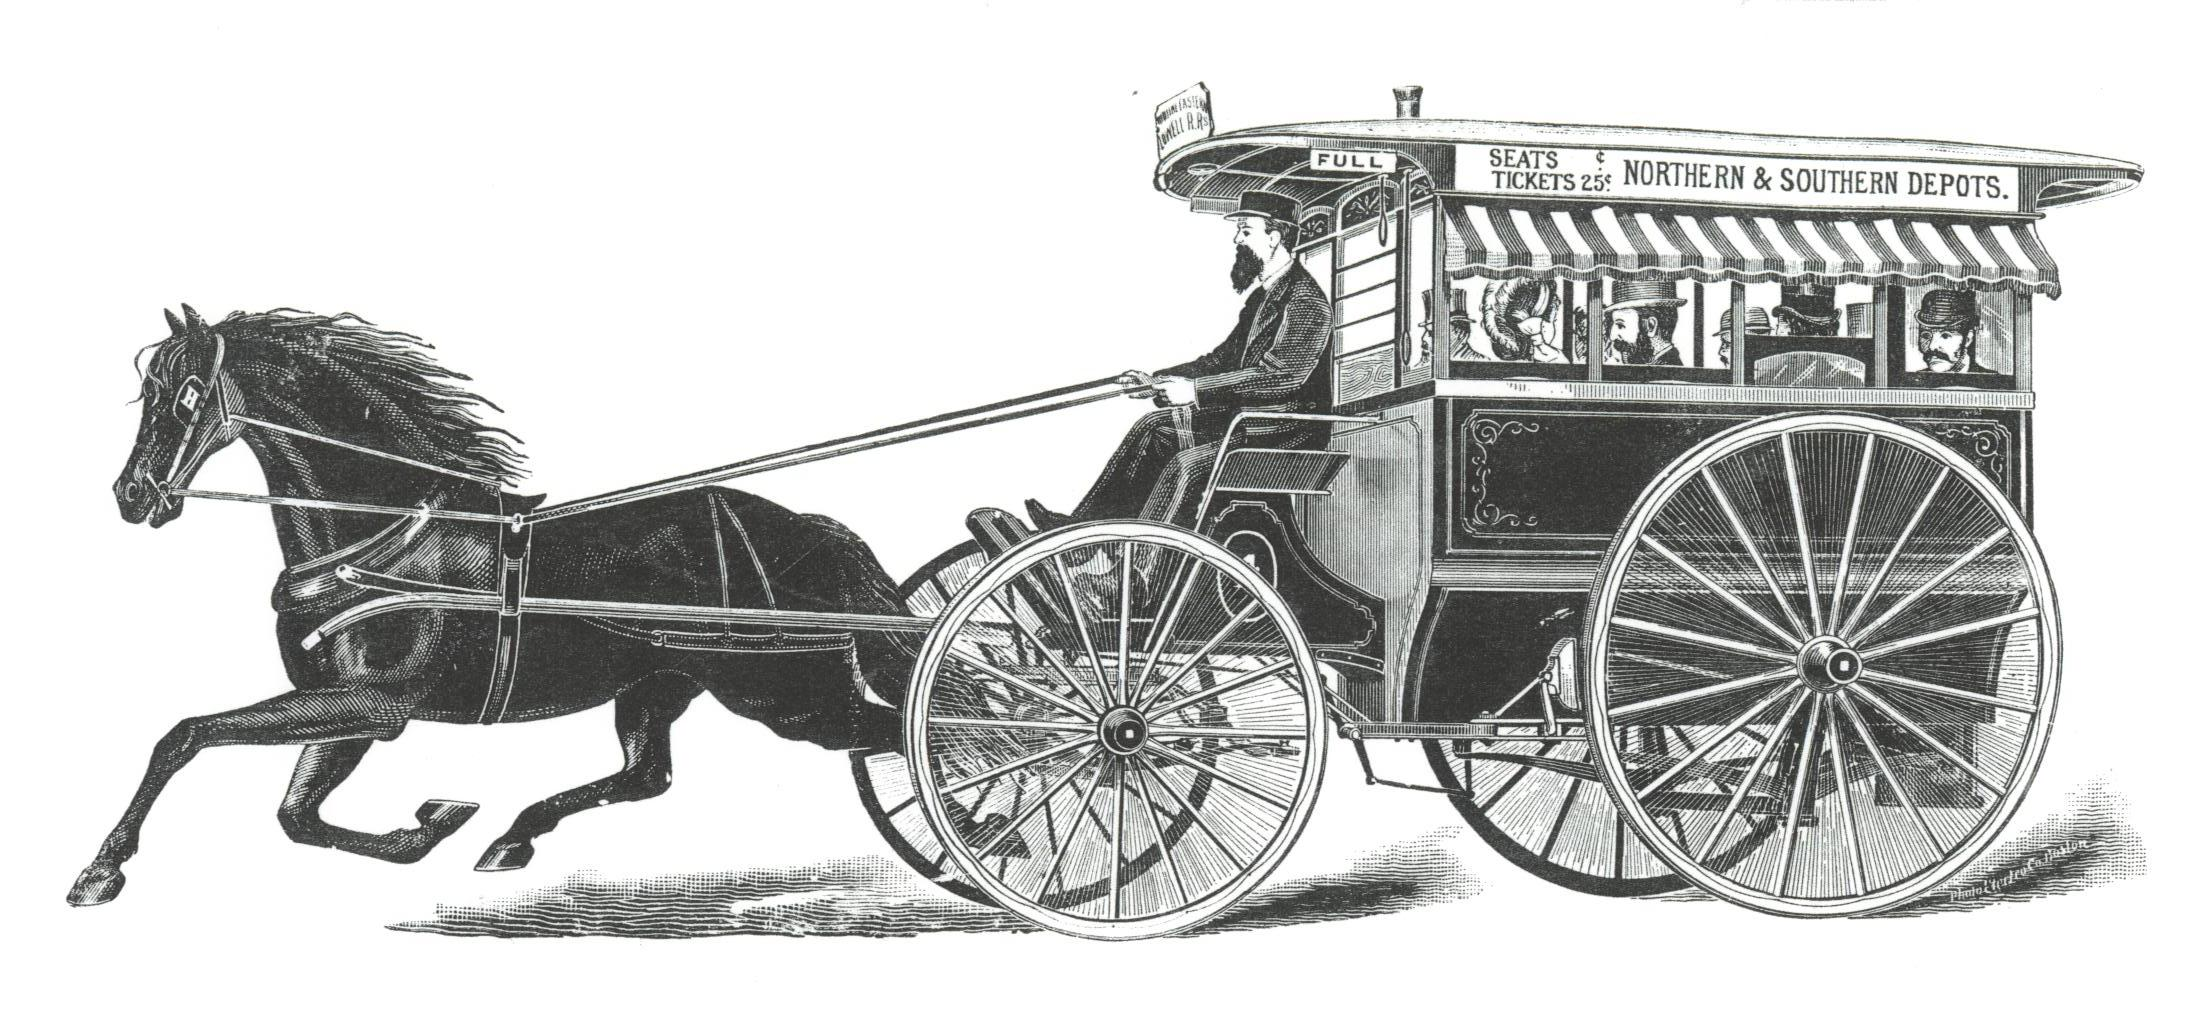 Drawn vehicle black and white Window openings on image four